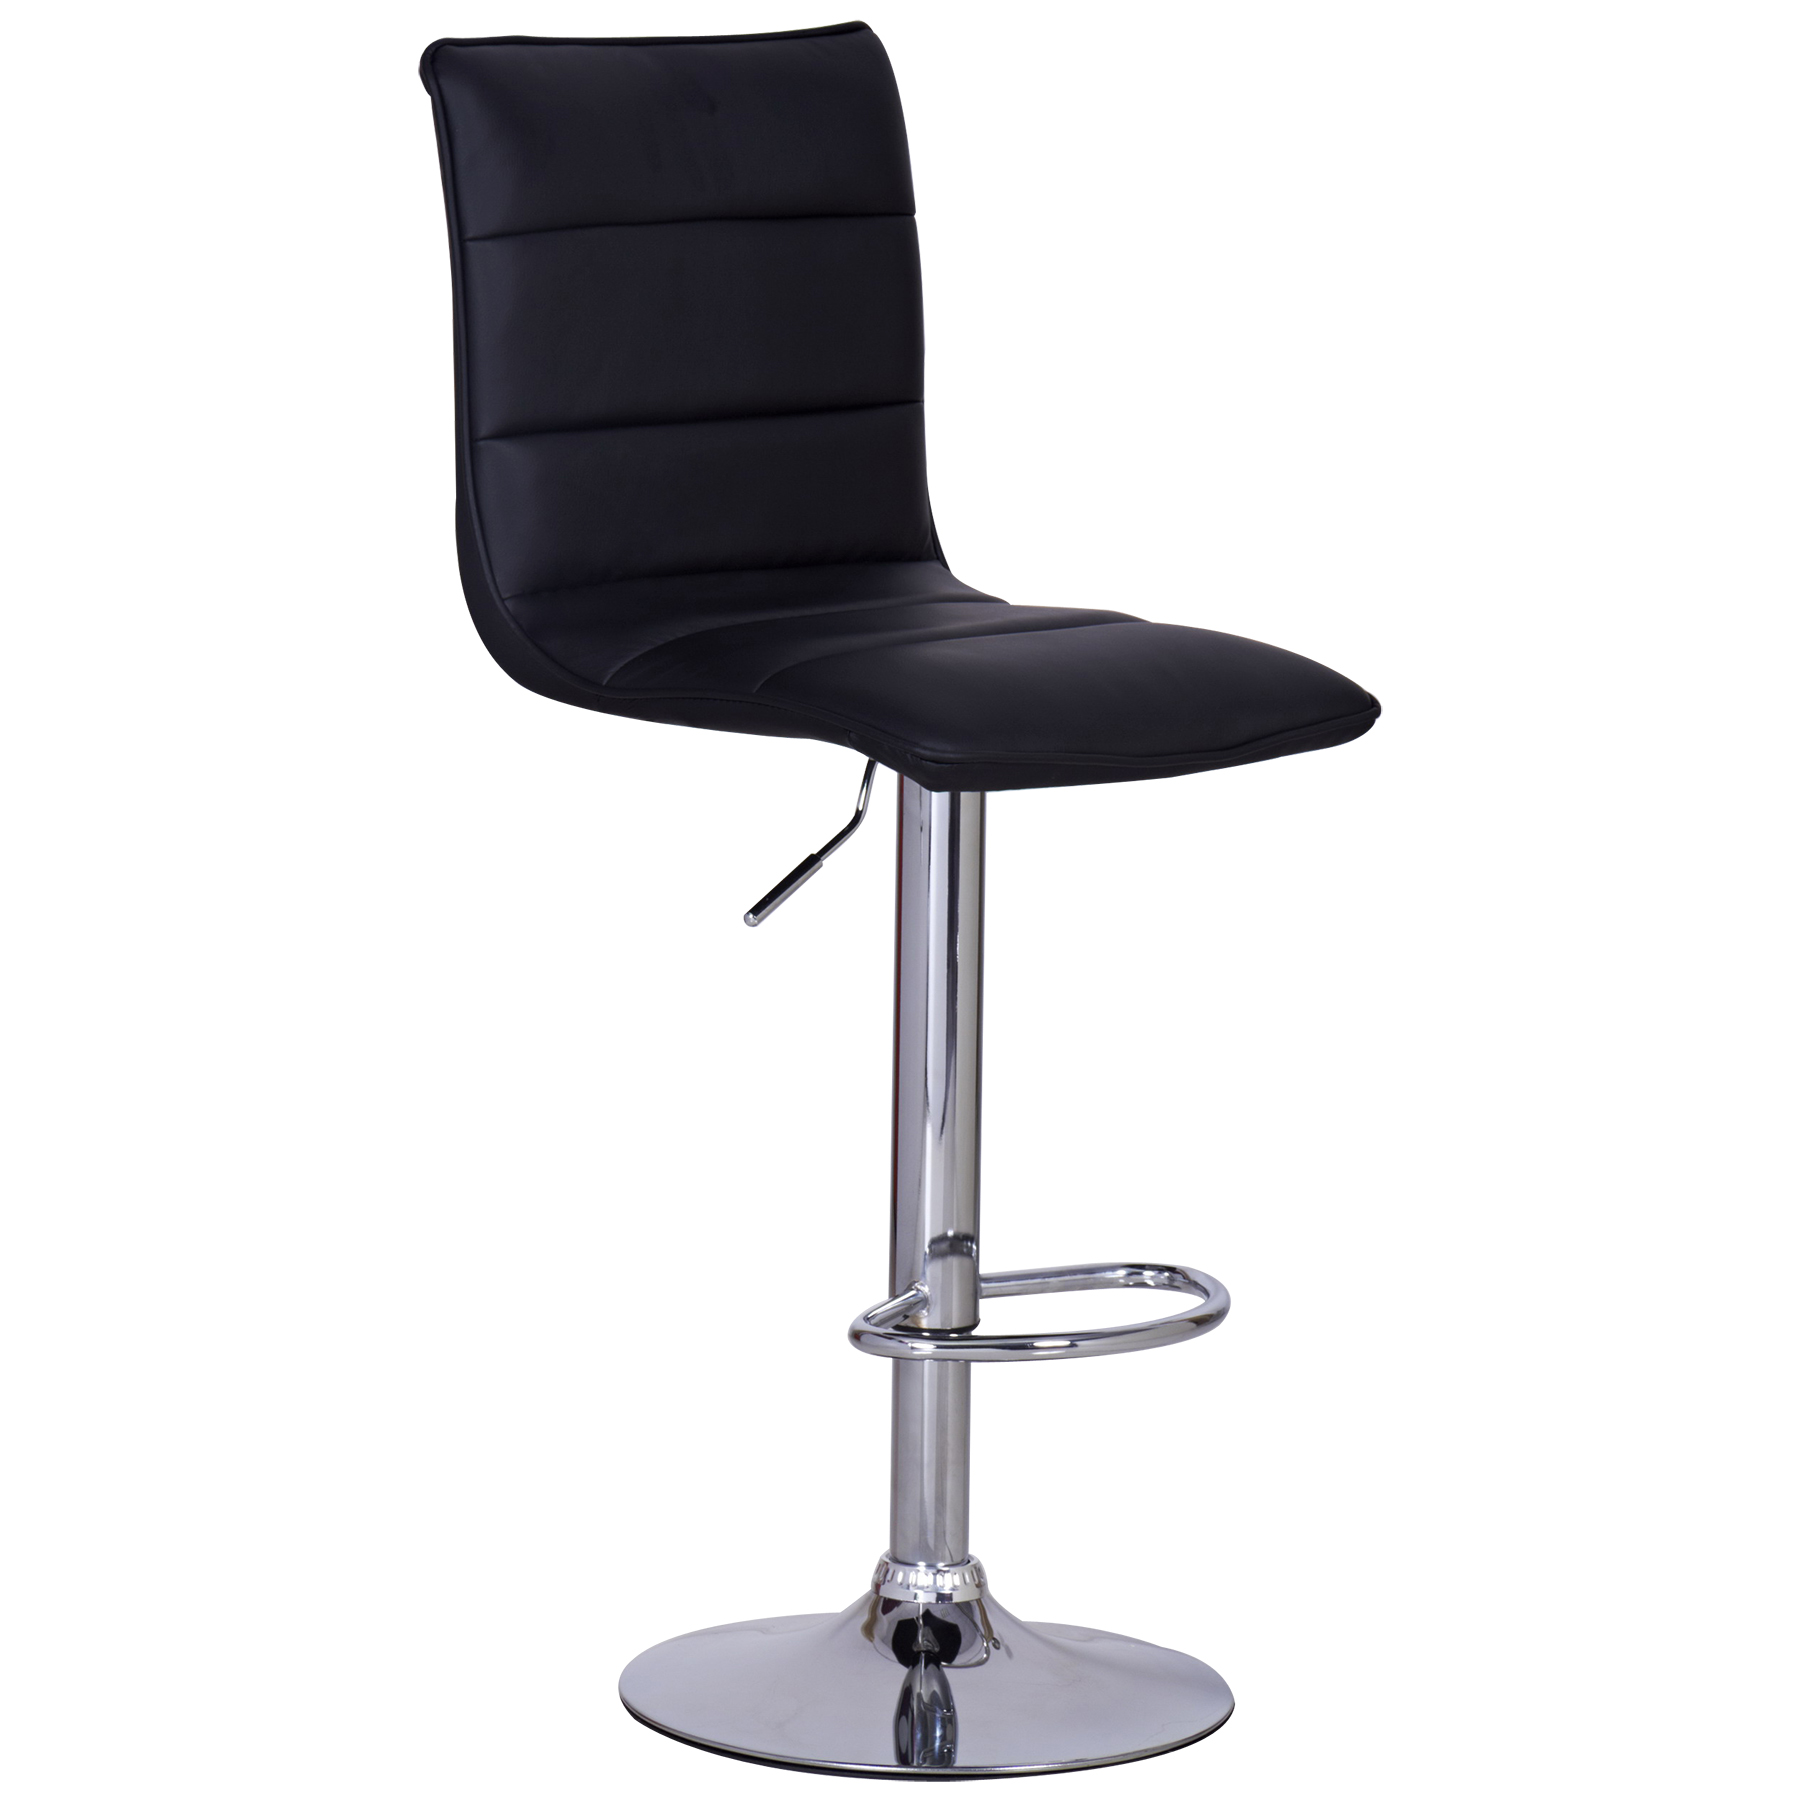 Faux Leather Bar Stools Swivel Bar Stool Kitchen Breakfast  : BH15sz 10 from www.ebay.co.uk size 1800 x 1800 jpeg 466kB